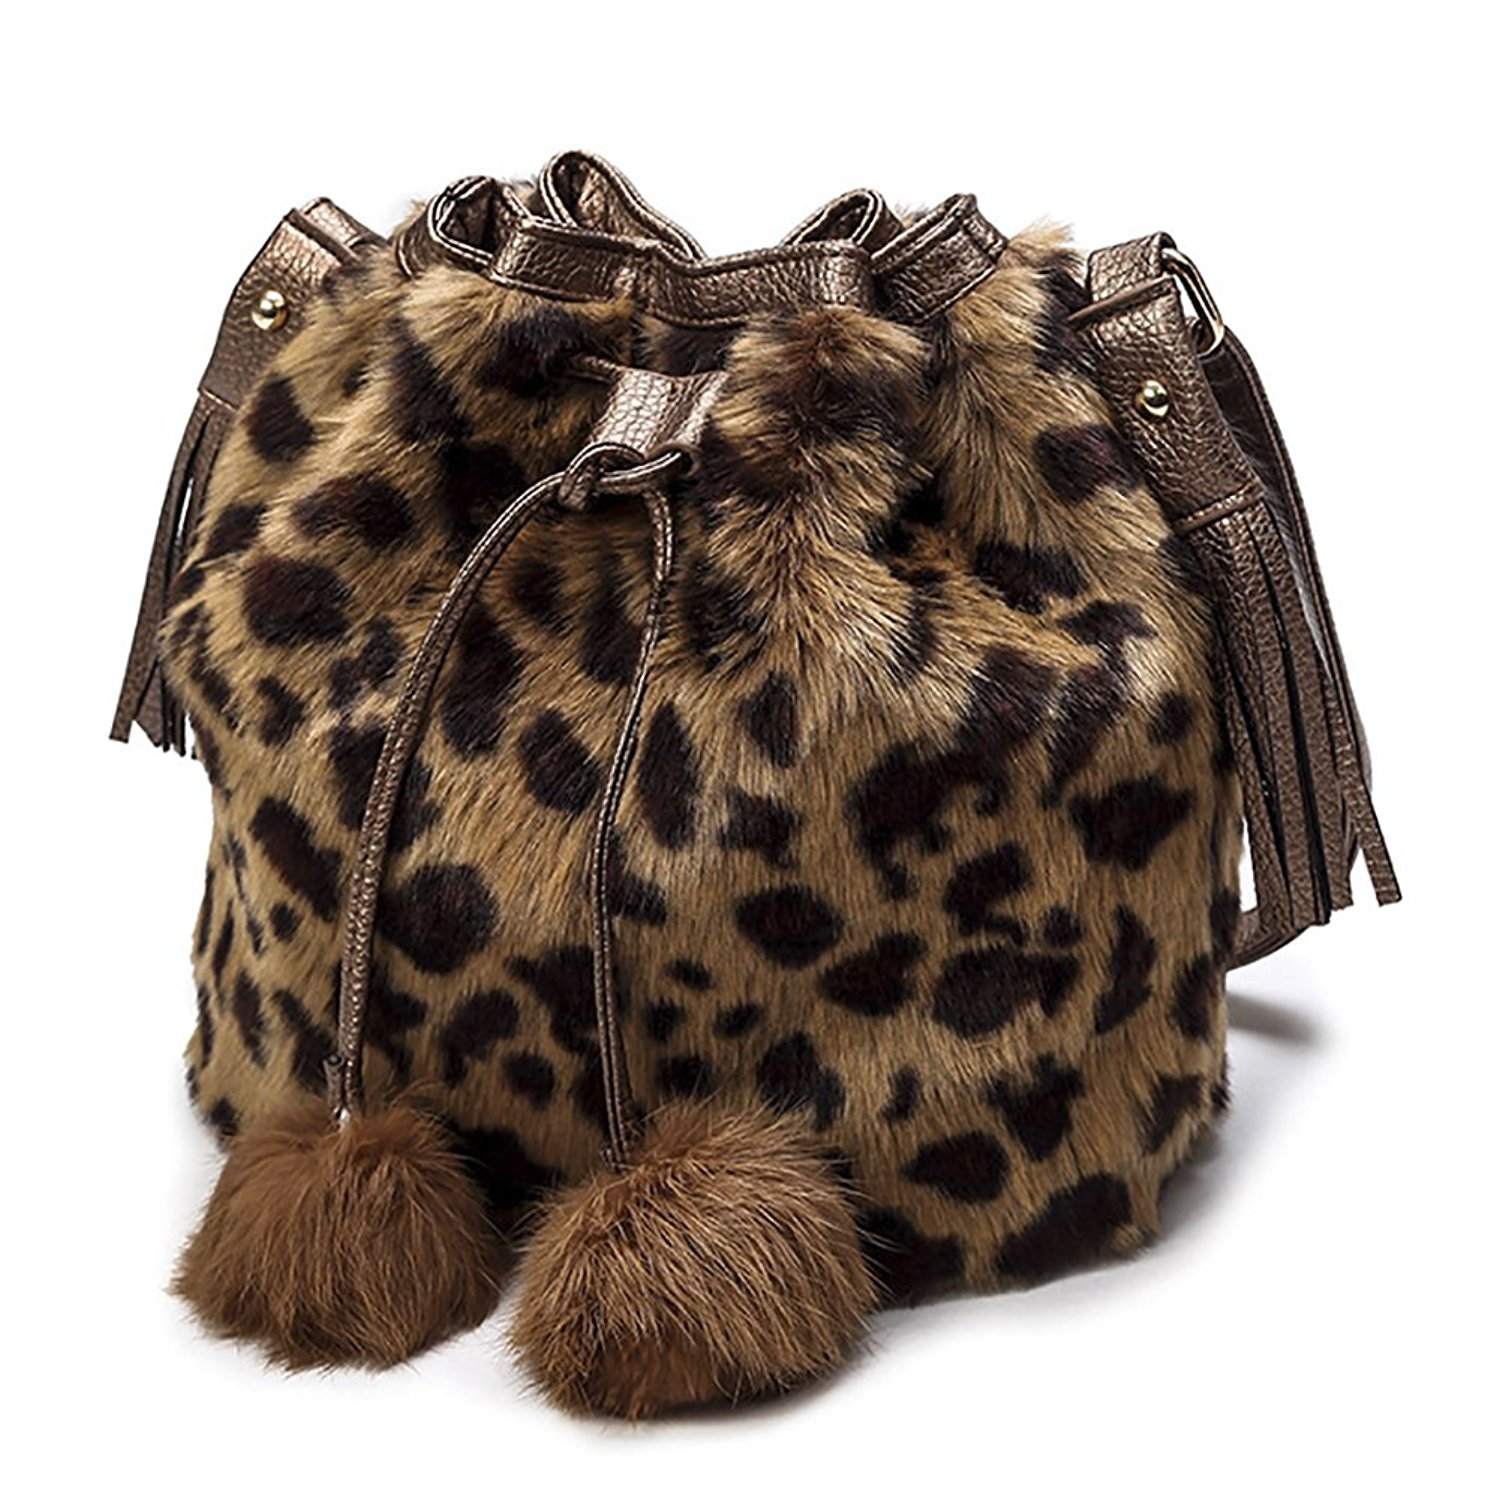 Get Quotations · QZUnique Women s Faux Fur Bucket Bag Drawstring Shoulder  Bag Crossbody Bag with Pompon 684f82902d1cc